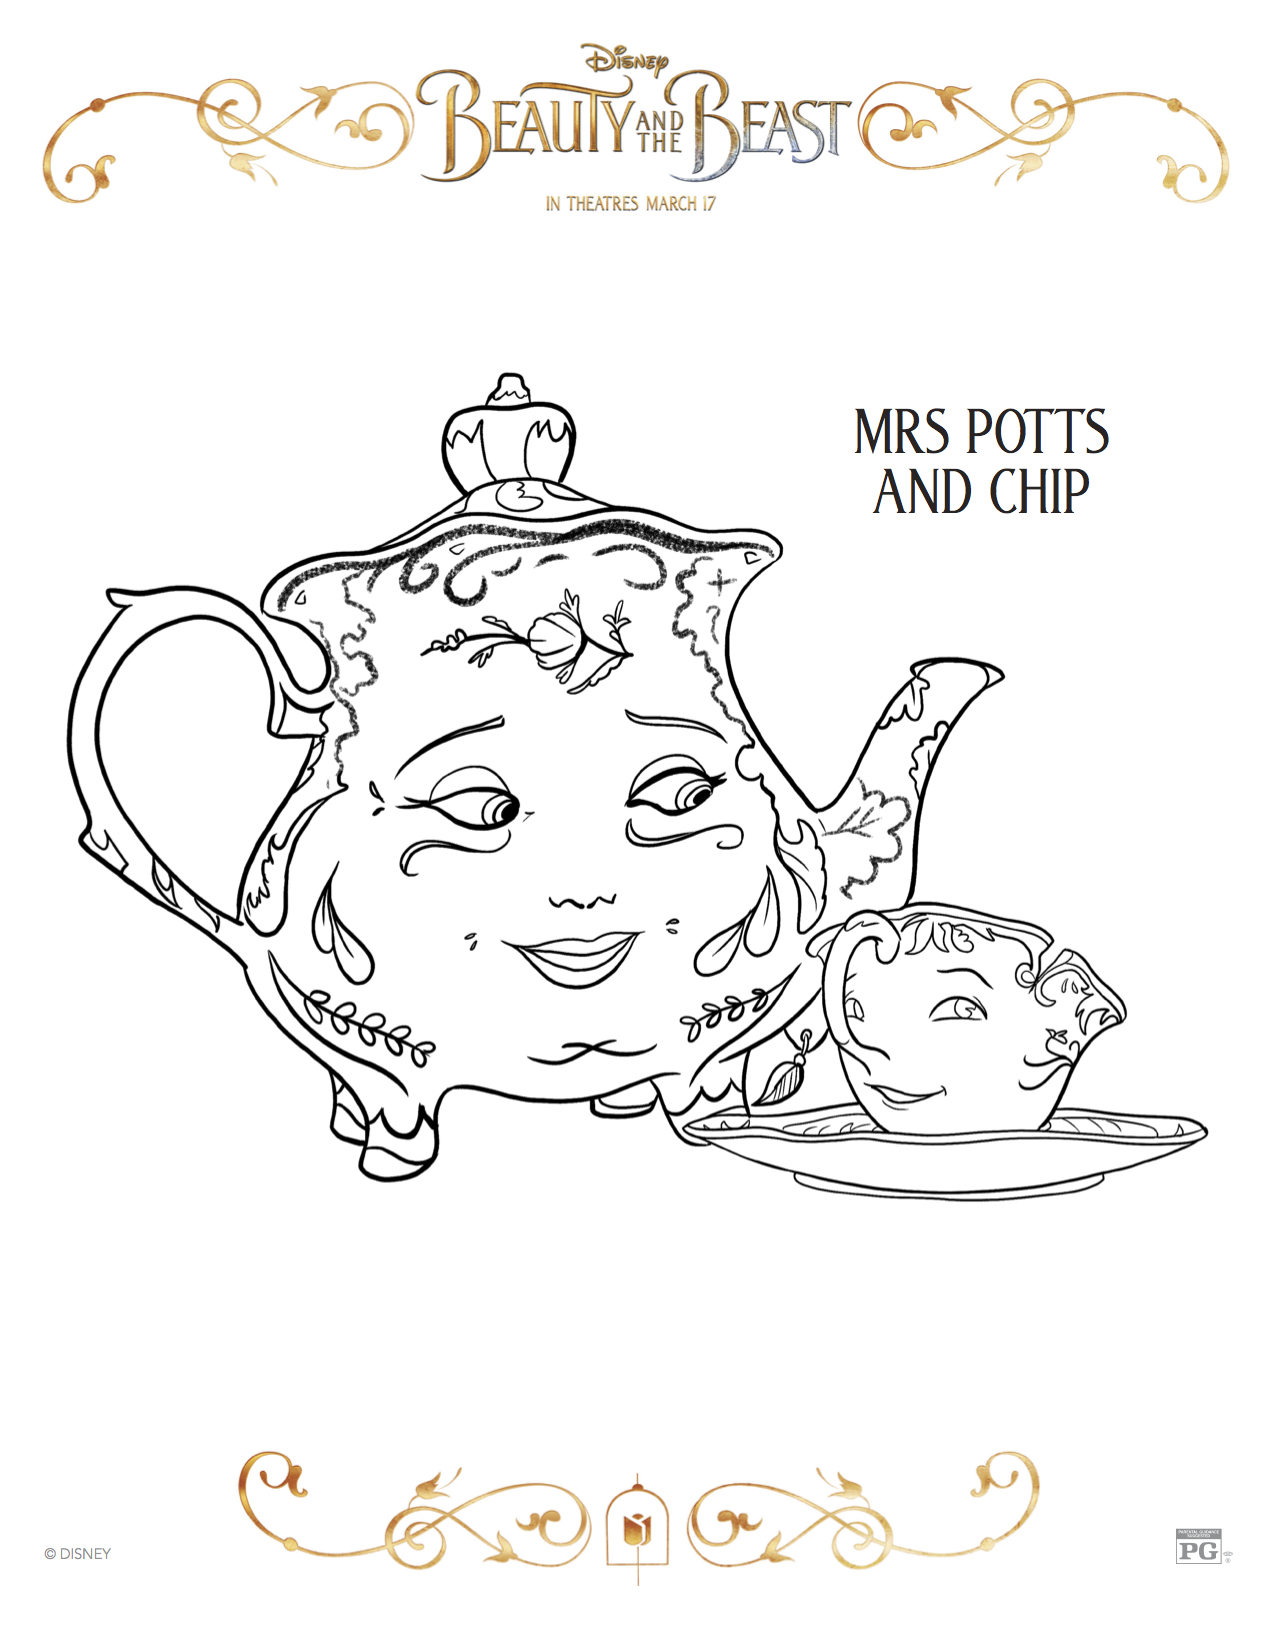 3 New Beauty And The Beast Printable Coloring Sheets Theresas - beauty and the beast coloring pages live action